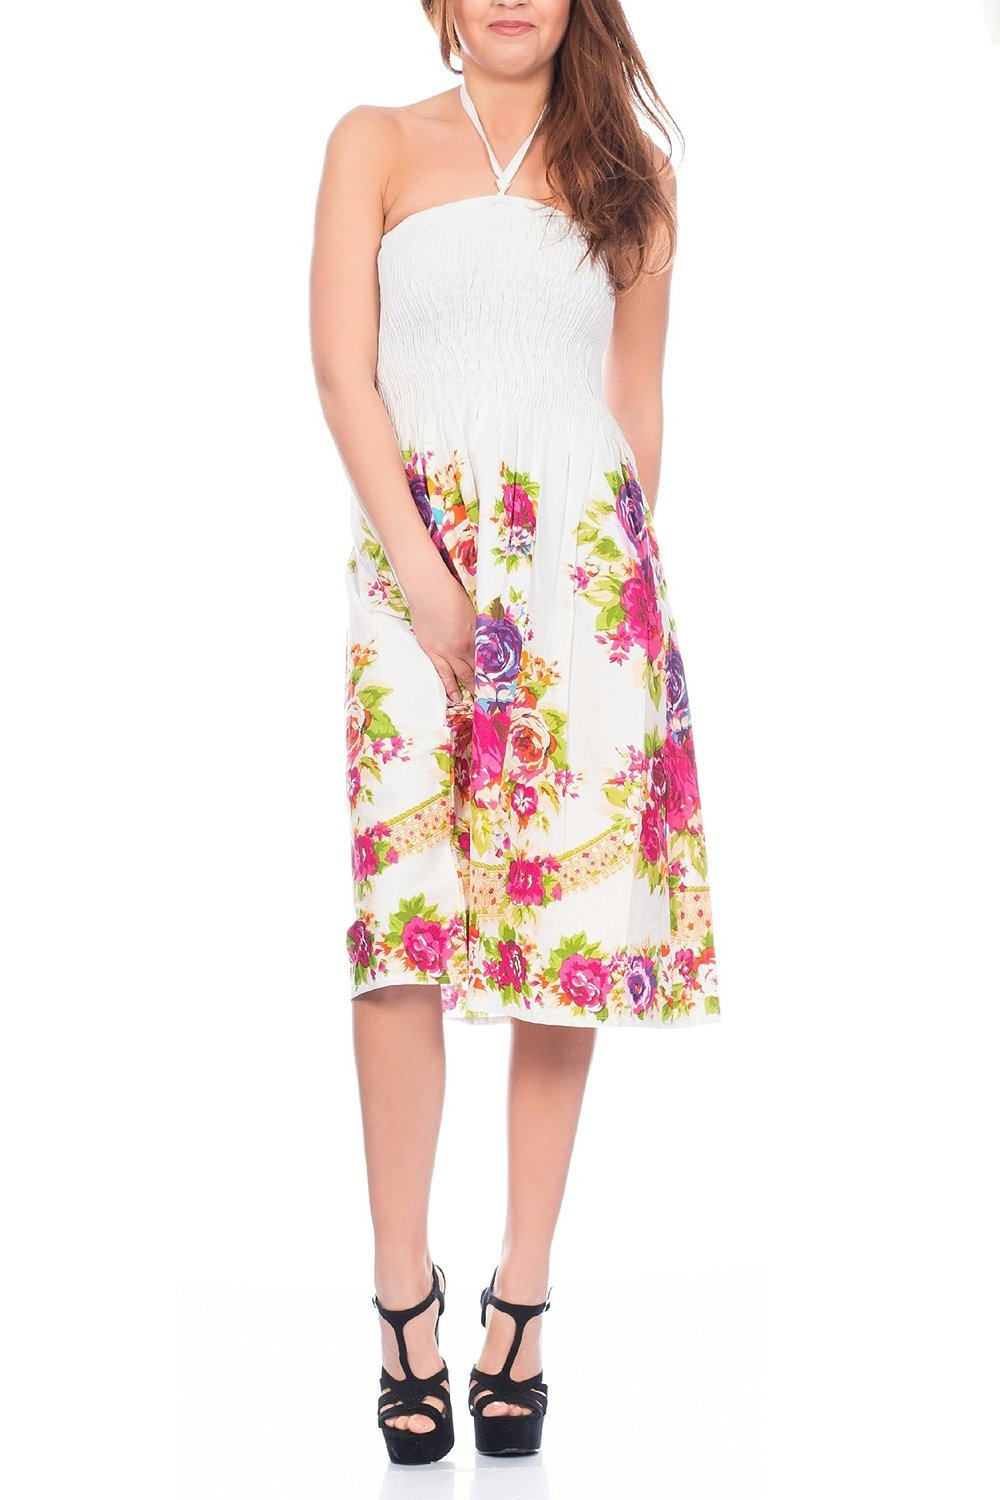 Ladies Floral Paisley Print 3 in 1 Summer Dress/Maxi Skirt, Purple or Pink Small Dannii Matthews